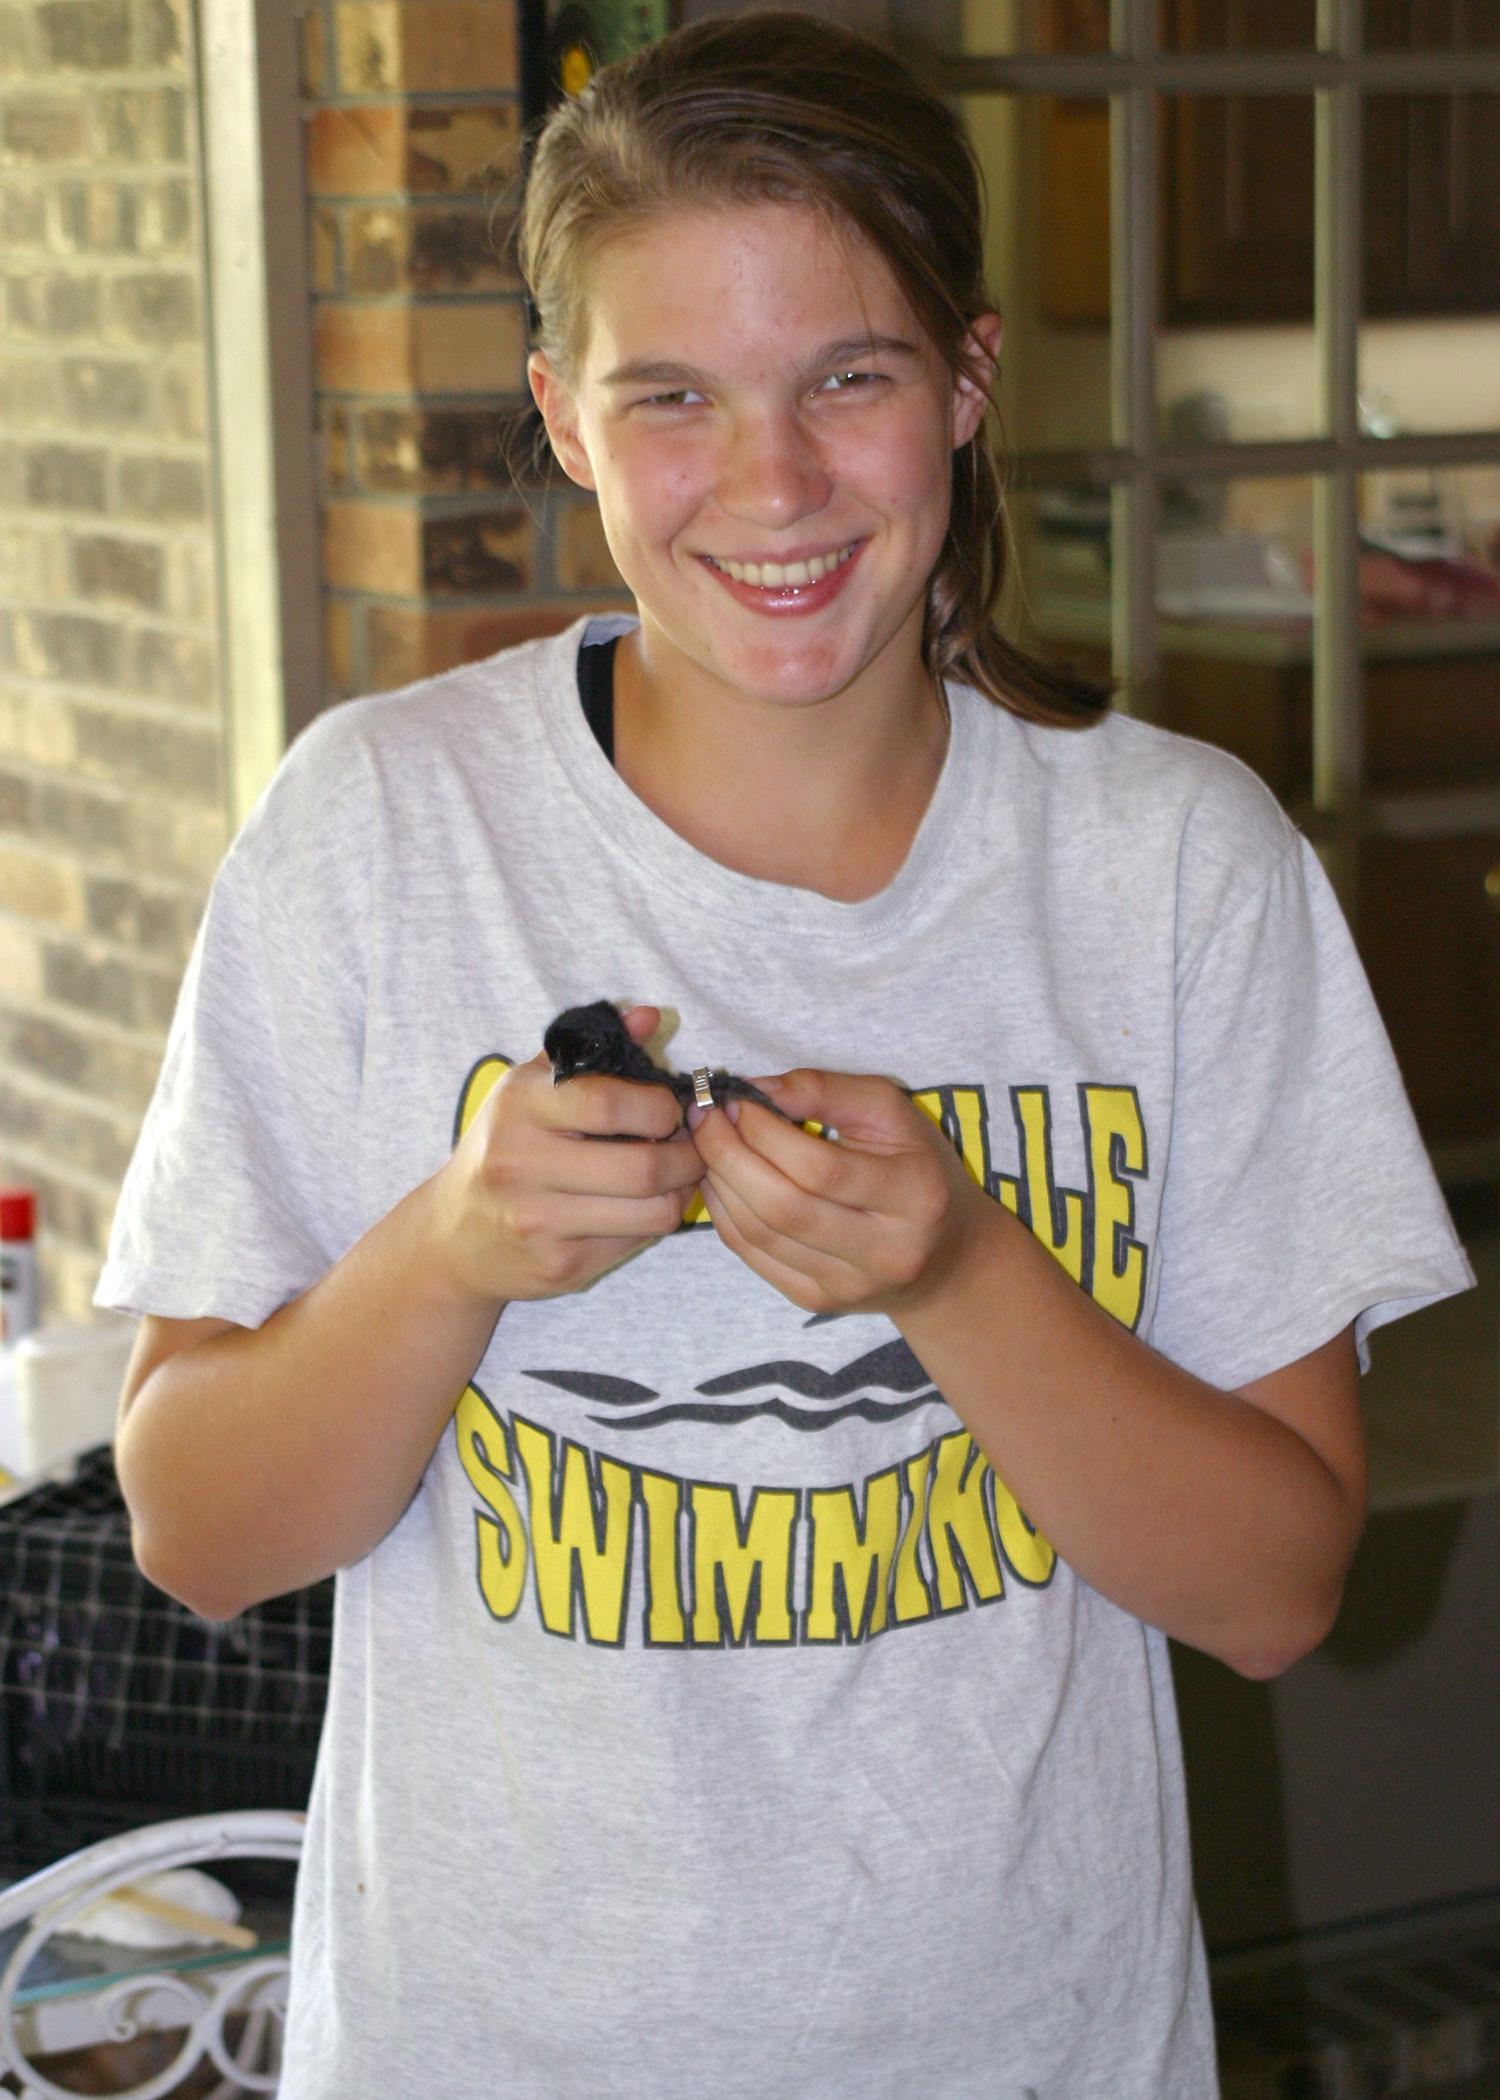 Sarah Byrd of Starkville placed fourth in the state in the 2012 4-H Poultry Chain project, which requires participants to raise 20 chicks for about five months before competing at the county level and auctioning their birds. (Submitted Photo)